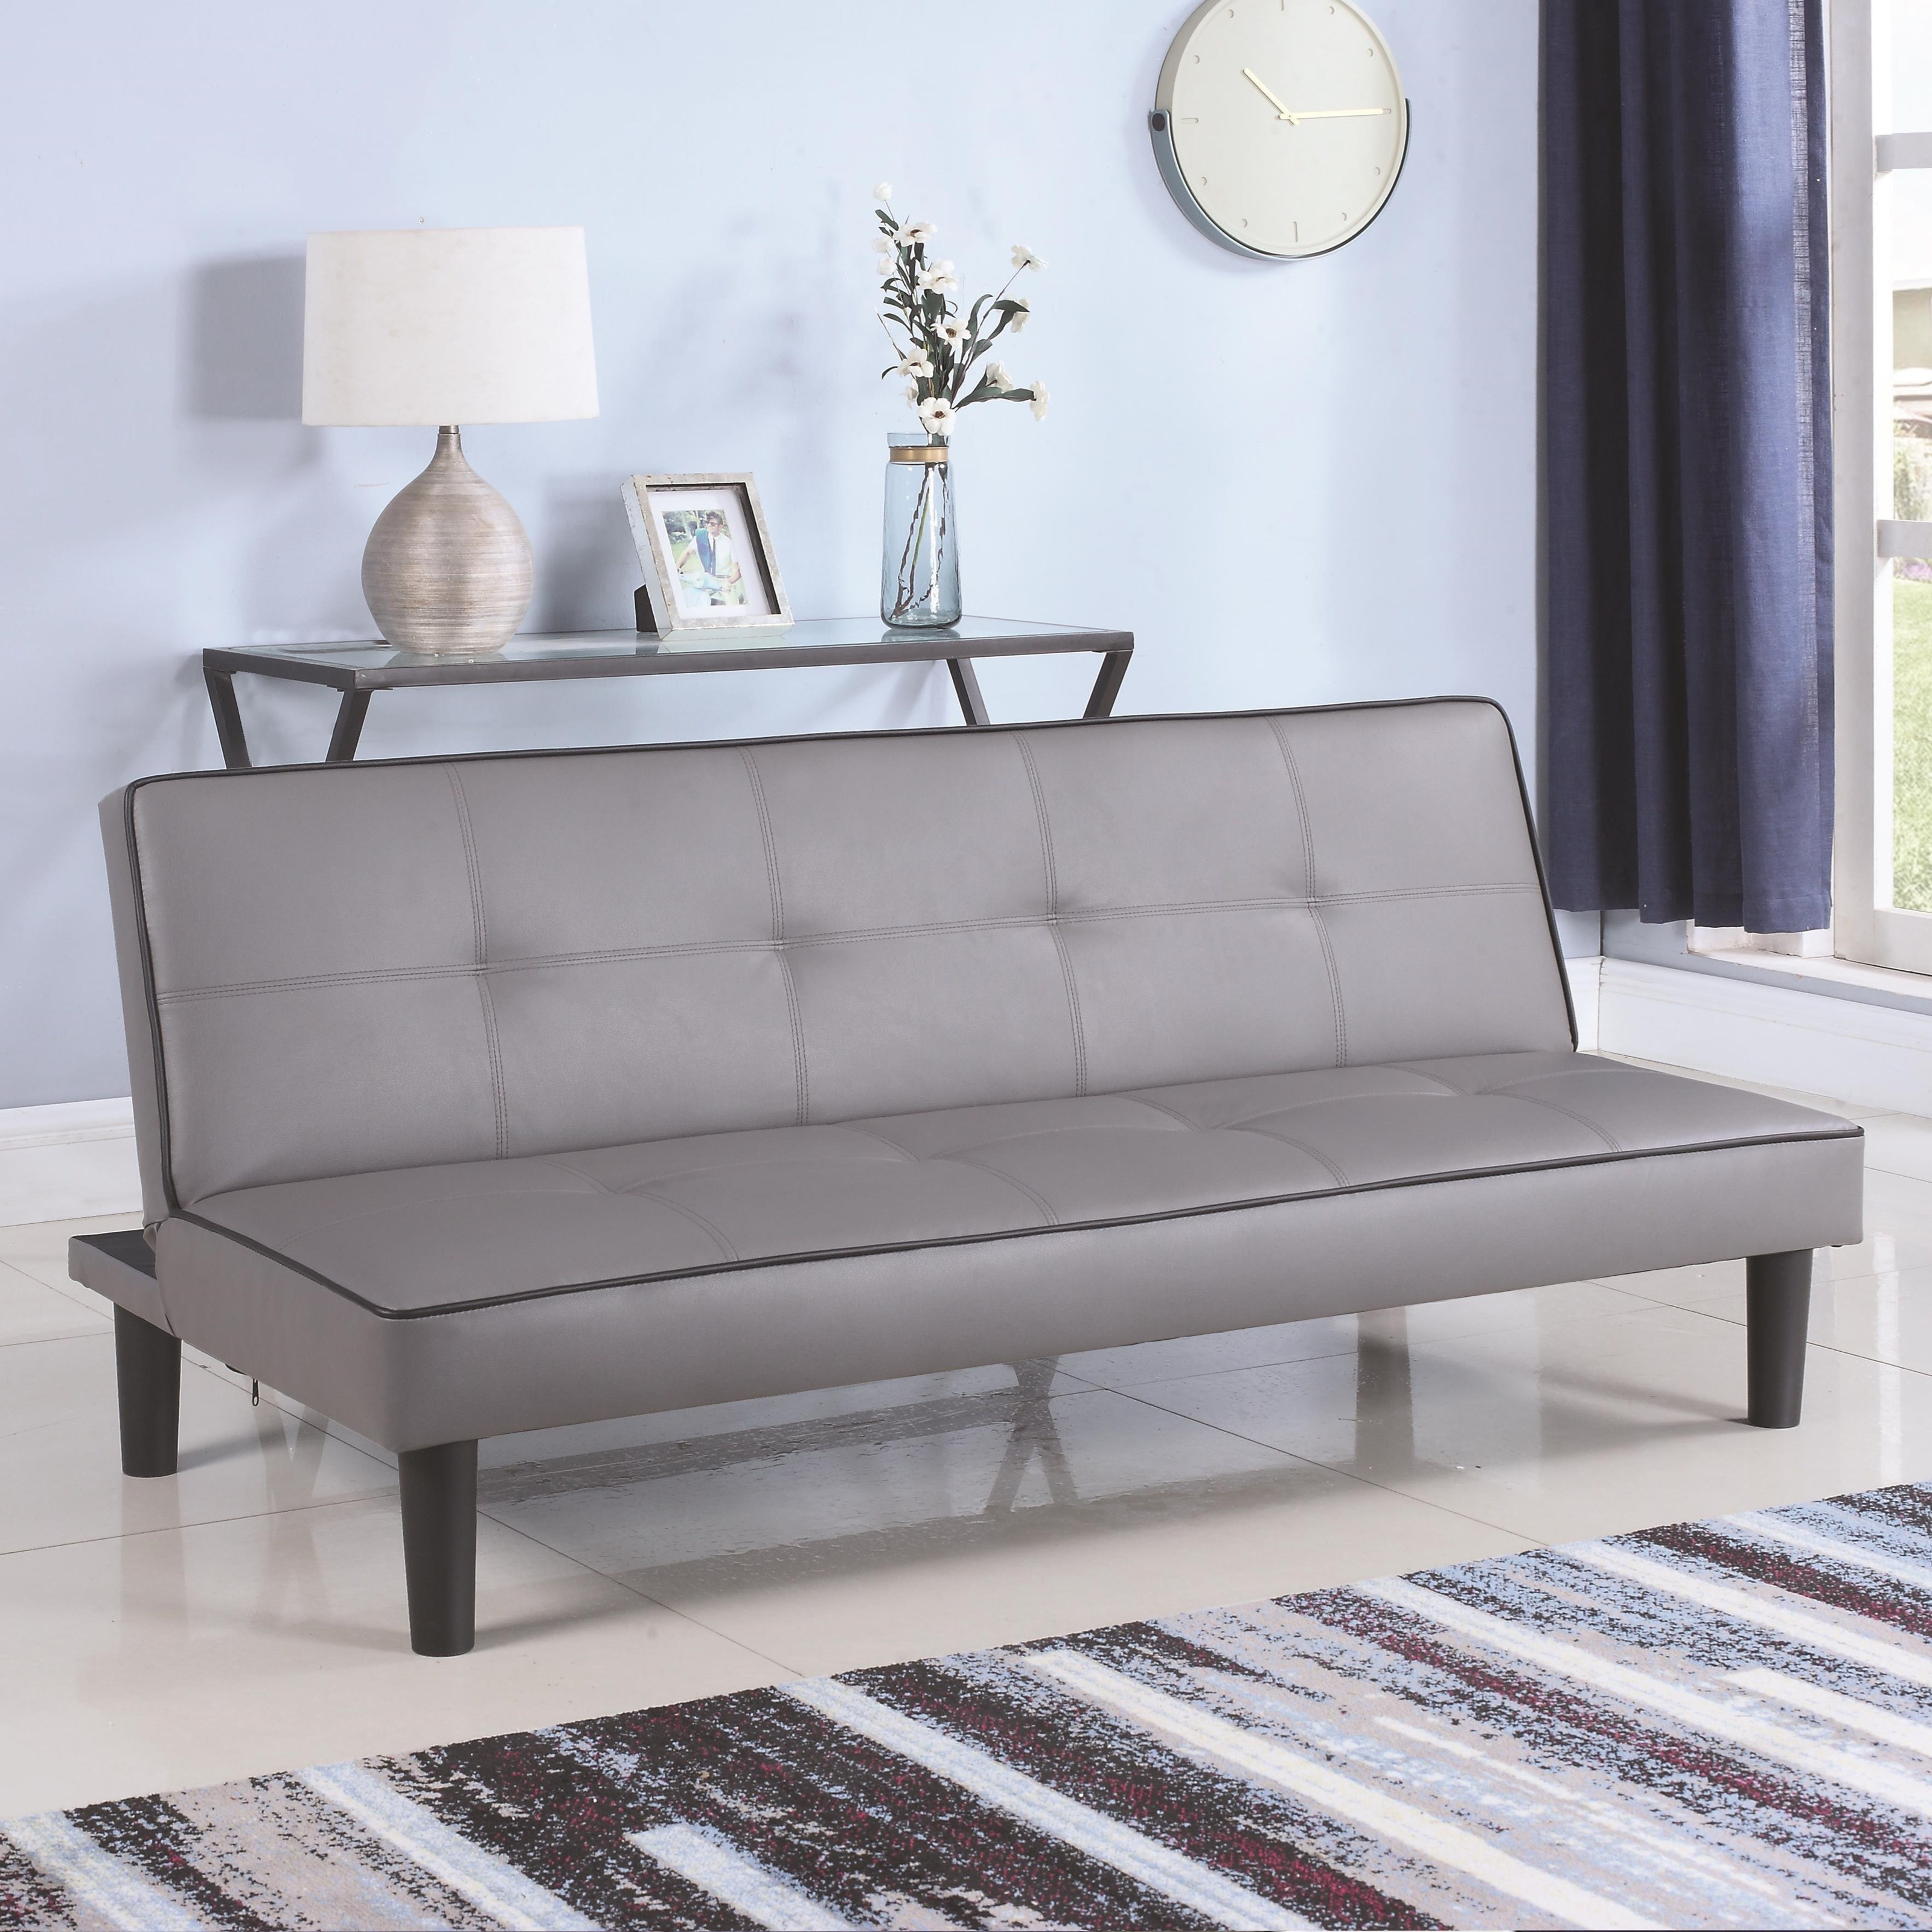 Coaster Sofa Beds and Futons Leatherette Sofa Bed Piping  Value City Furniture  Futons